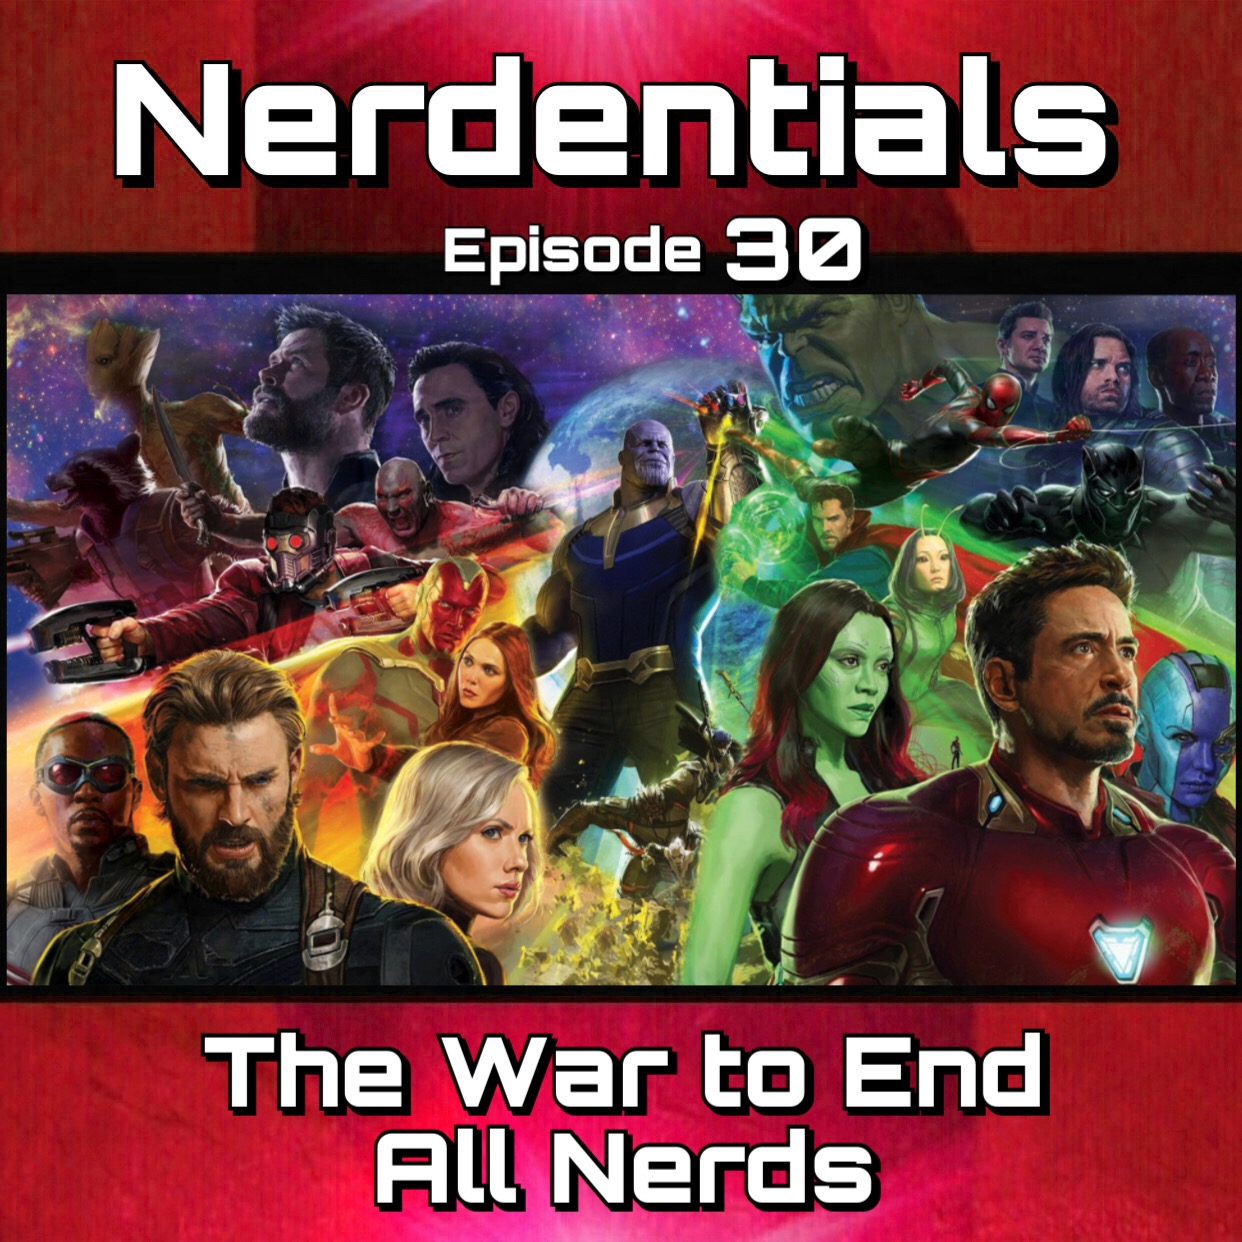 - Welcome to Nerdentials! Your weekly dose of the nerdy essentials. Covering Film, TV, Video Games and Comics. This week your 4 nerds, Joe, Matt, Nick and Lynn dive deep into all they know on the up coming Marvel movie Avengers: Infinity War! WARNING!!! possible spoilers revealed through movie trailers, news, fan theories and speculation! You have been warned!